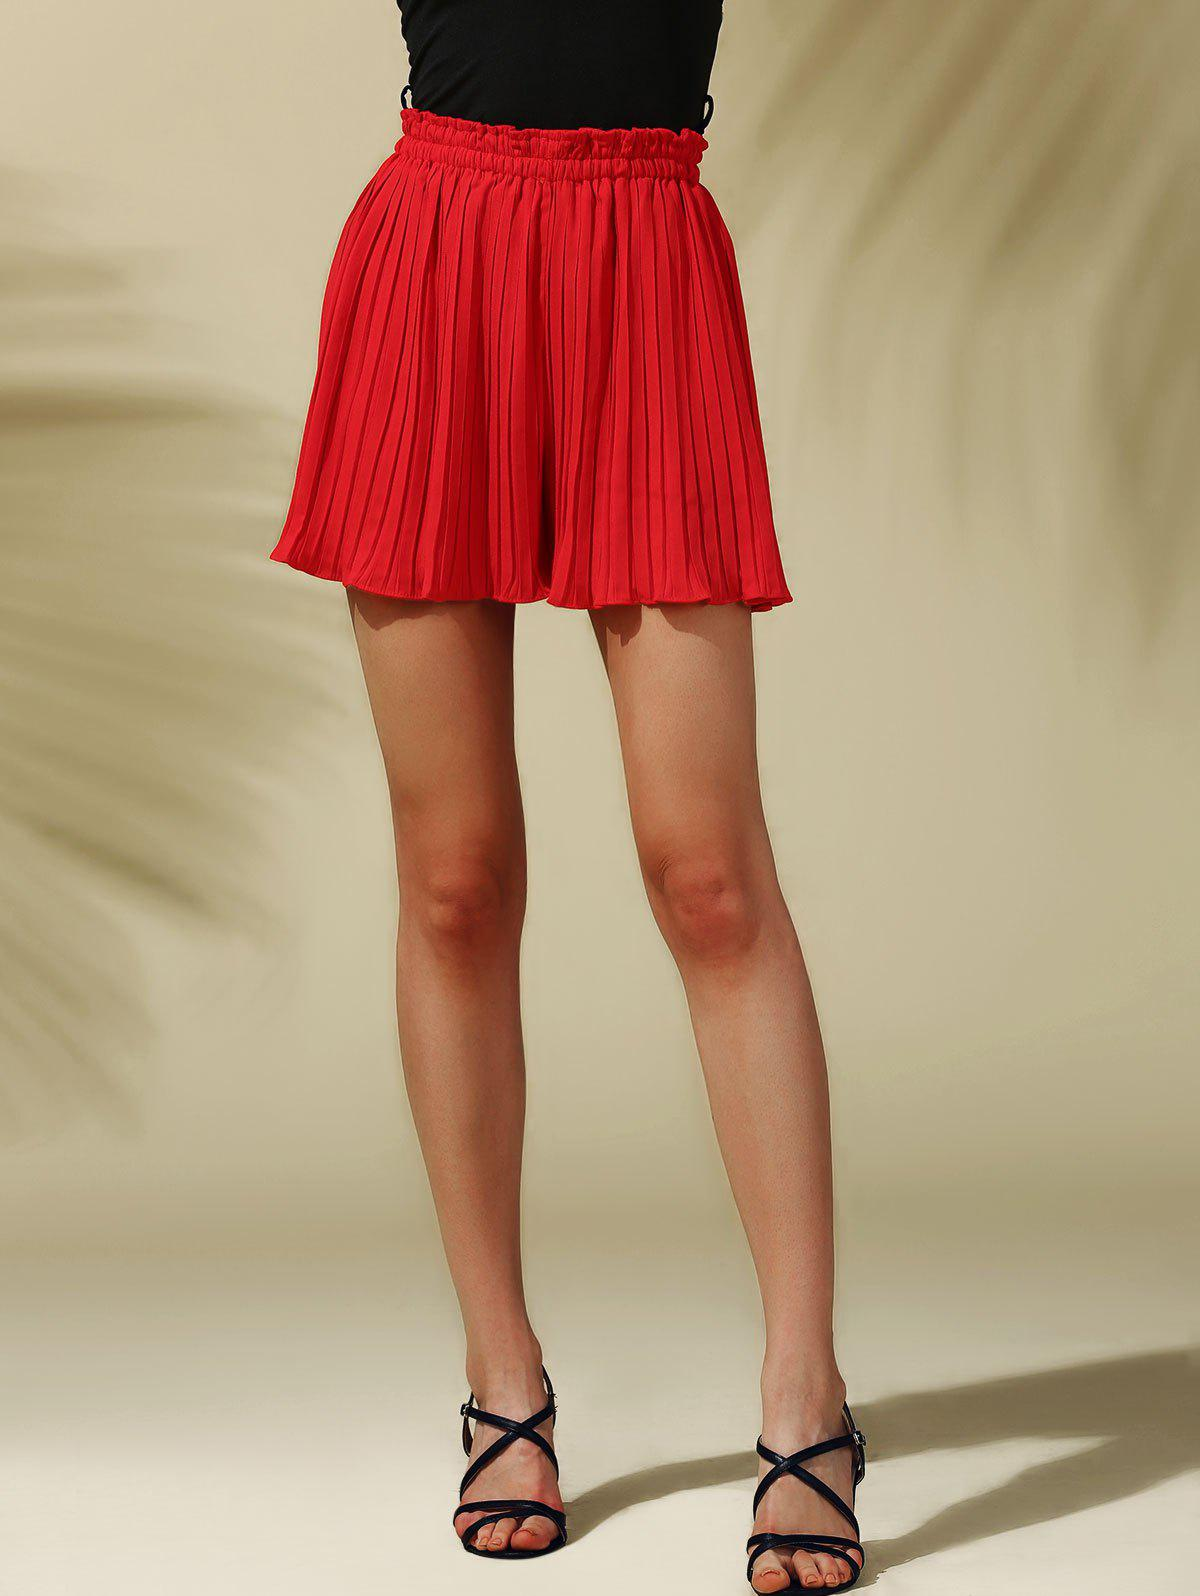 Sweet Women's Elastic Waist Pleated Skirt Shorts - RED ONE SIZE(FIT SIZE XS TO M)